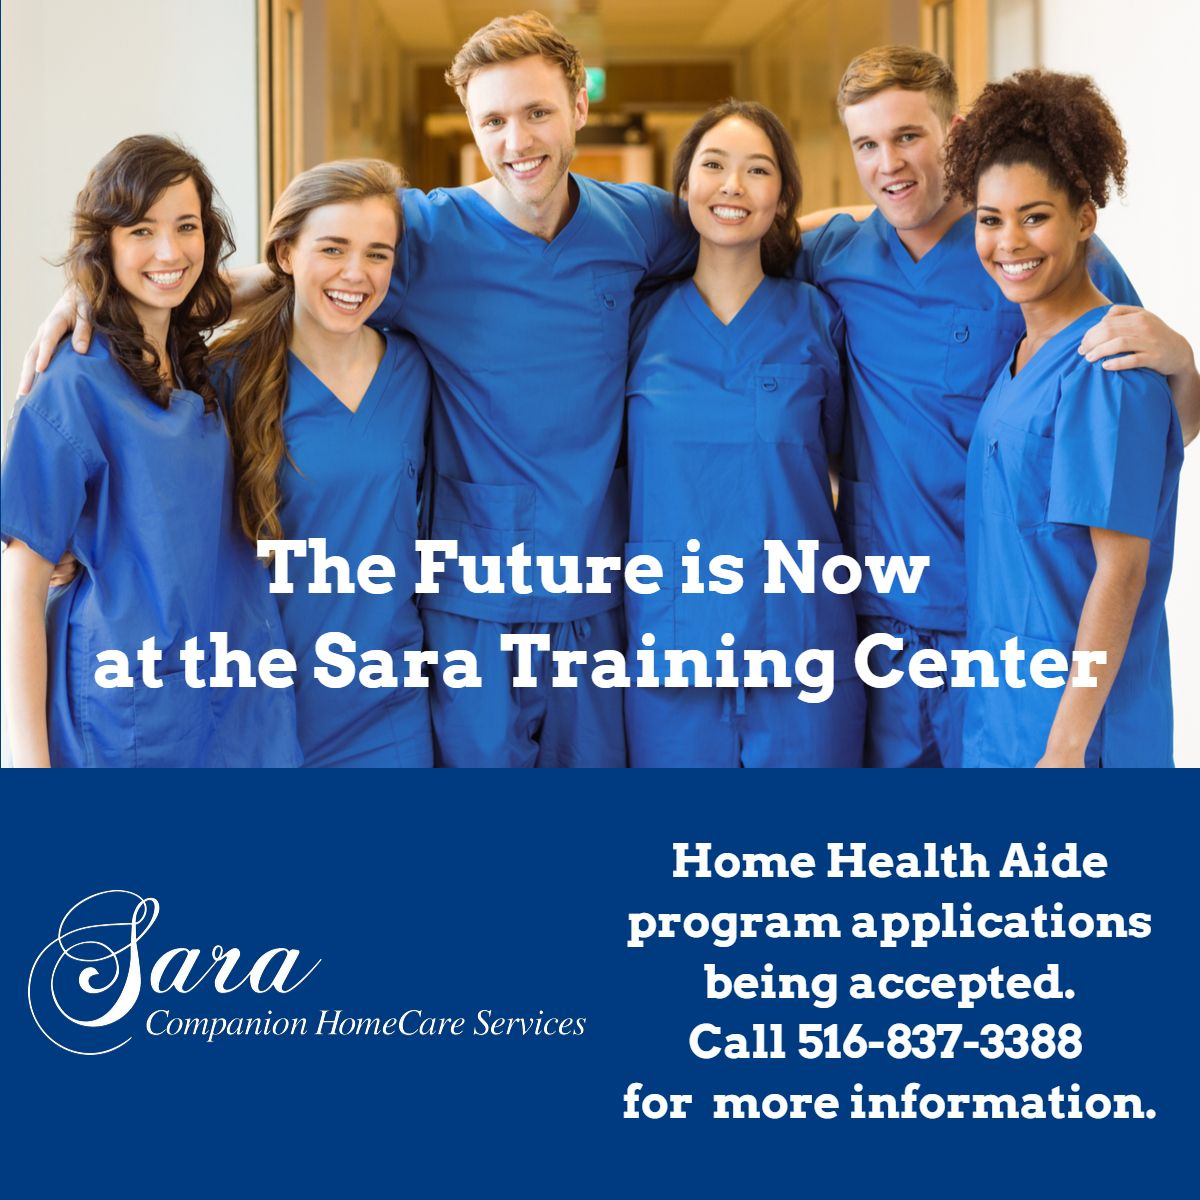 Sara Is Offering The Department Of Health Approved Home Health Aide Training Program To Interested Students Who Qu In 2020 Home Health Aide Training Center Home Health